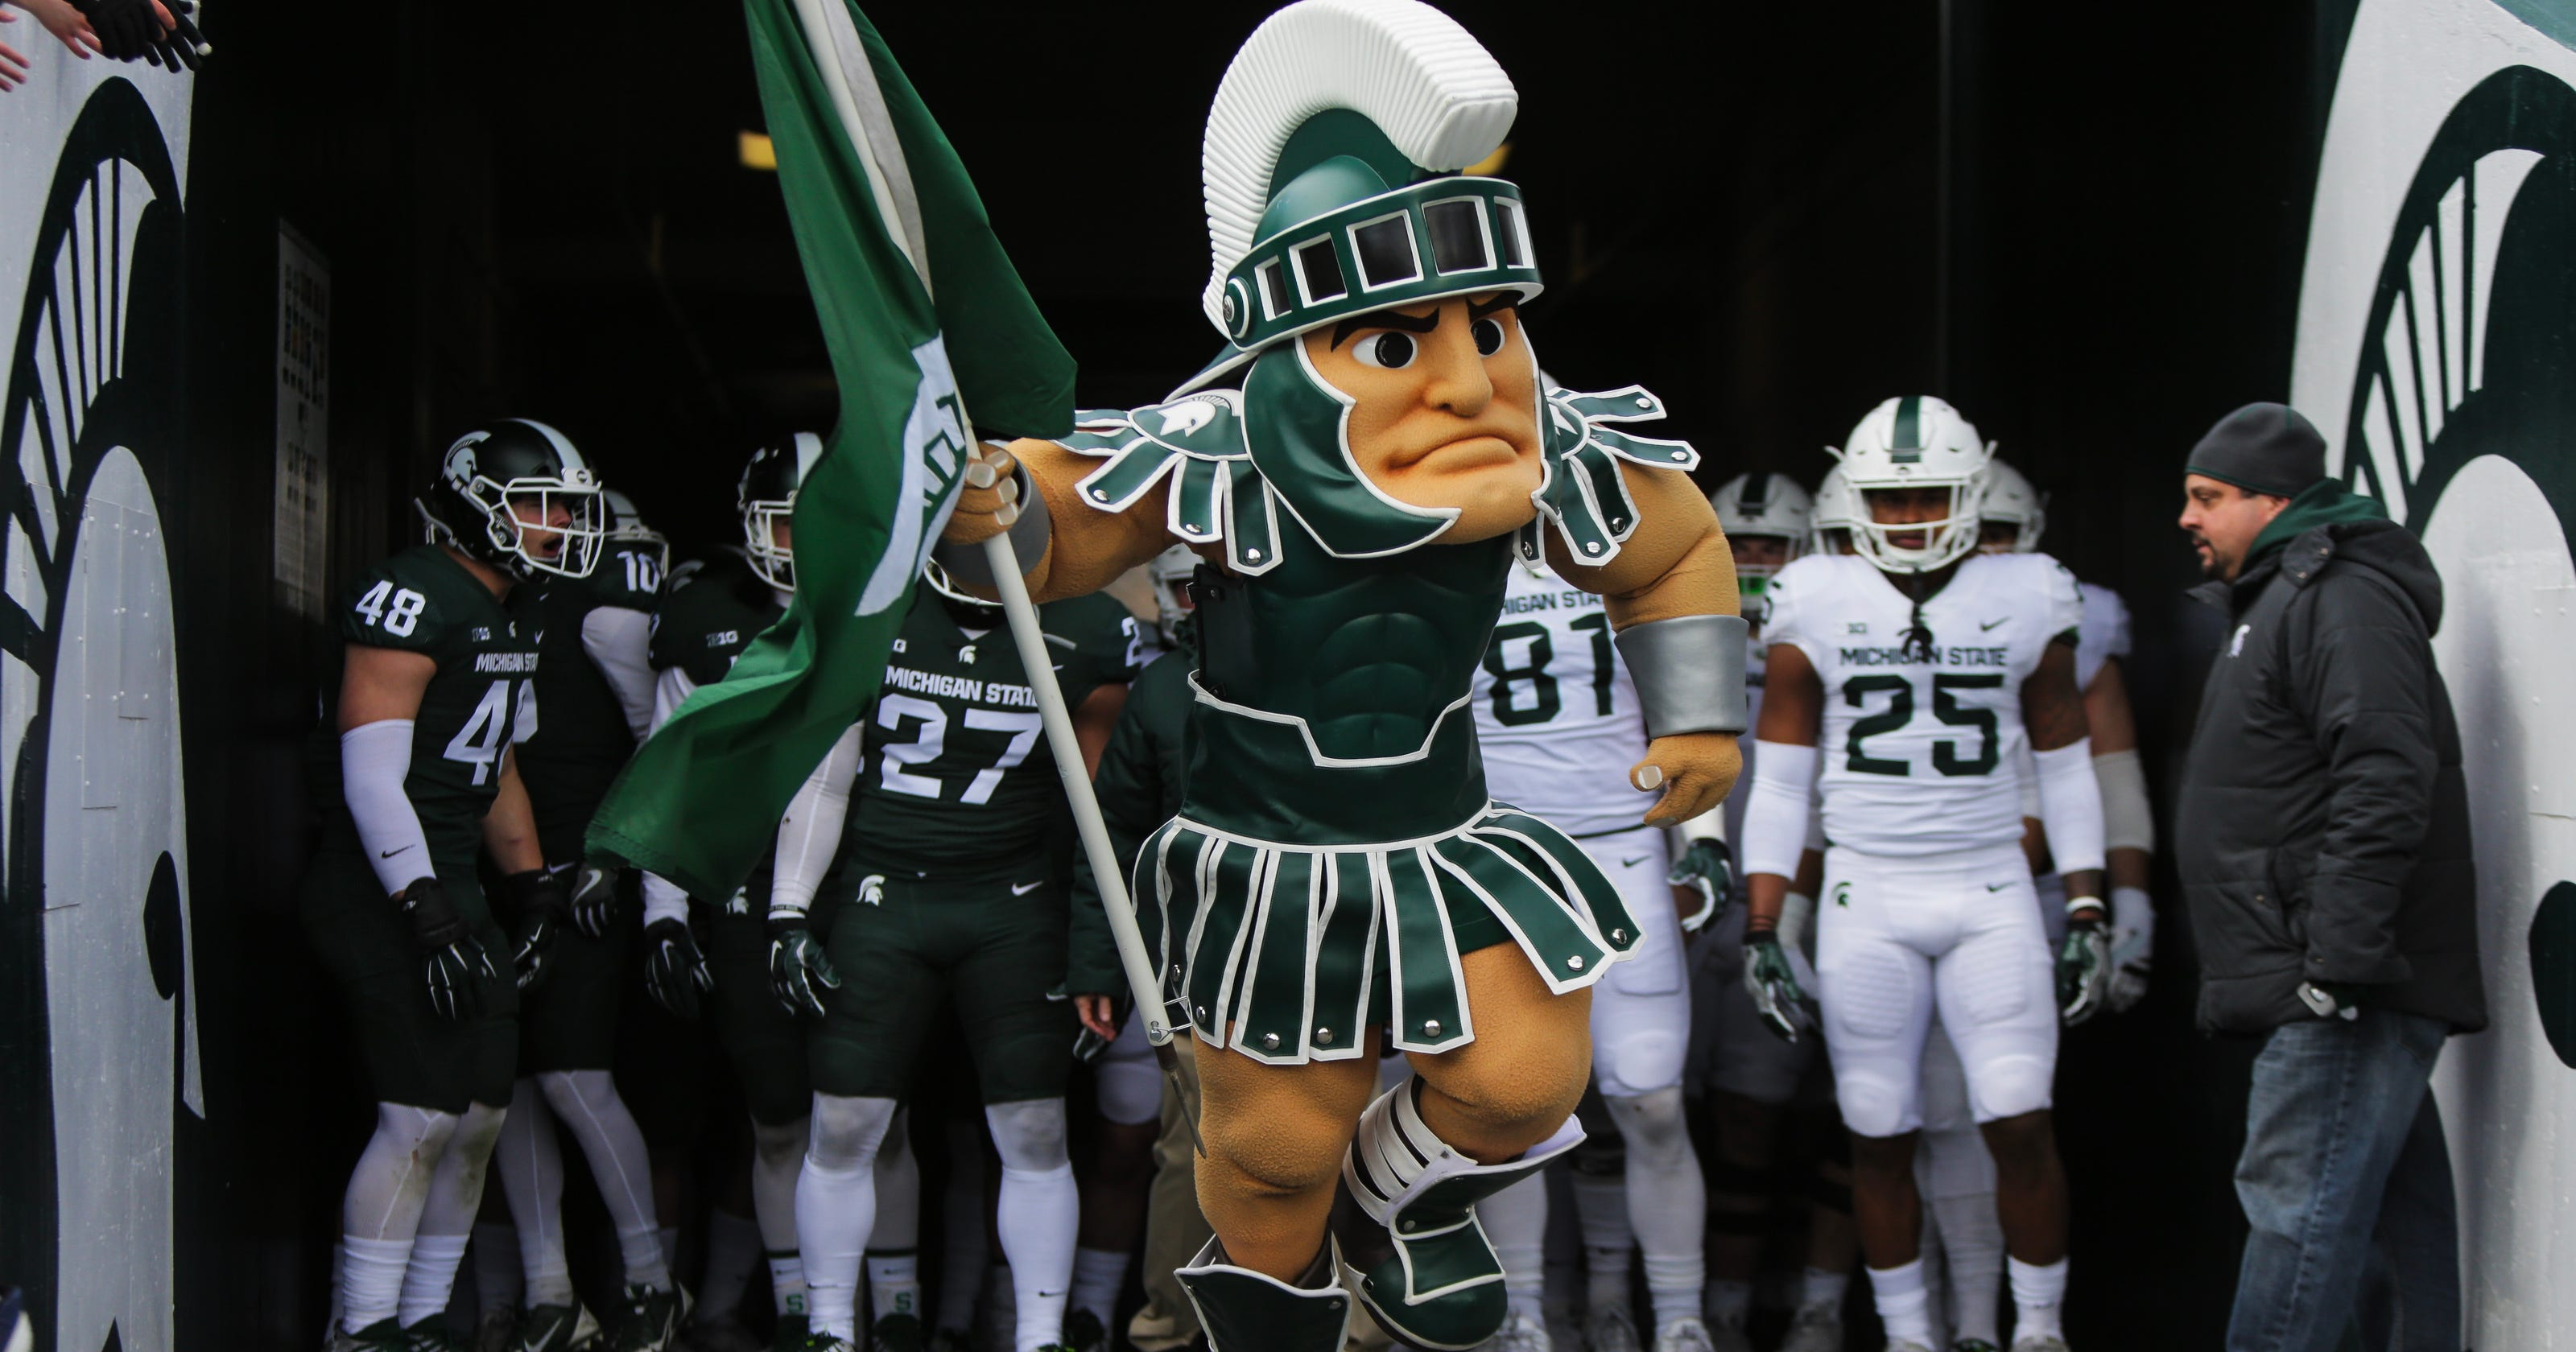 e16d1c841be The history behind Sparty, Michigan State University's mascot